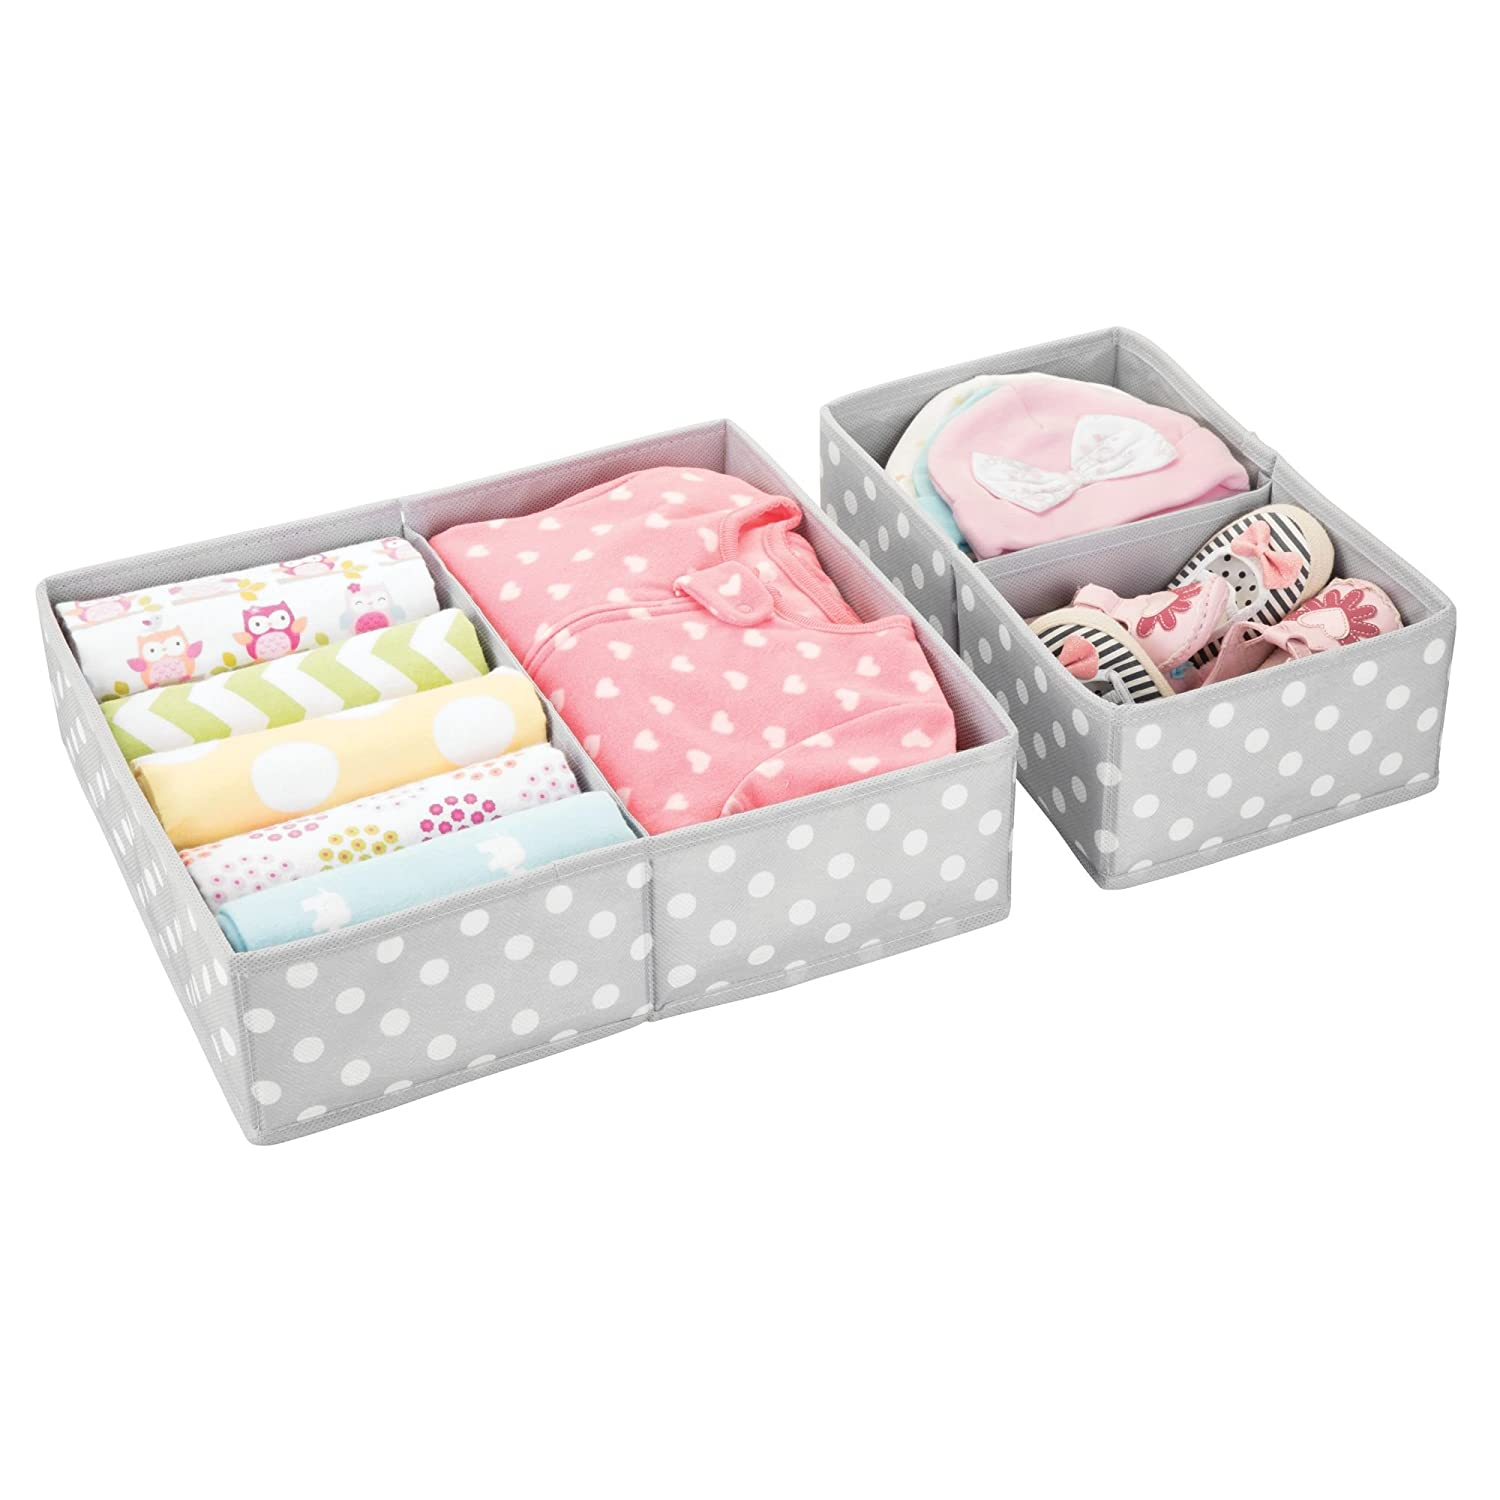 Set of 2 2 Sizes mDesign Soft Fabric Dresser Drawer and Closet Storage Organizer for Child//Kids Room Fun Polka Dot Print Nursery Divided 2 Compartment Organizer Gray with White Dots MetroDecor 00600MDCOEU